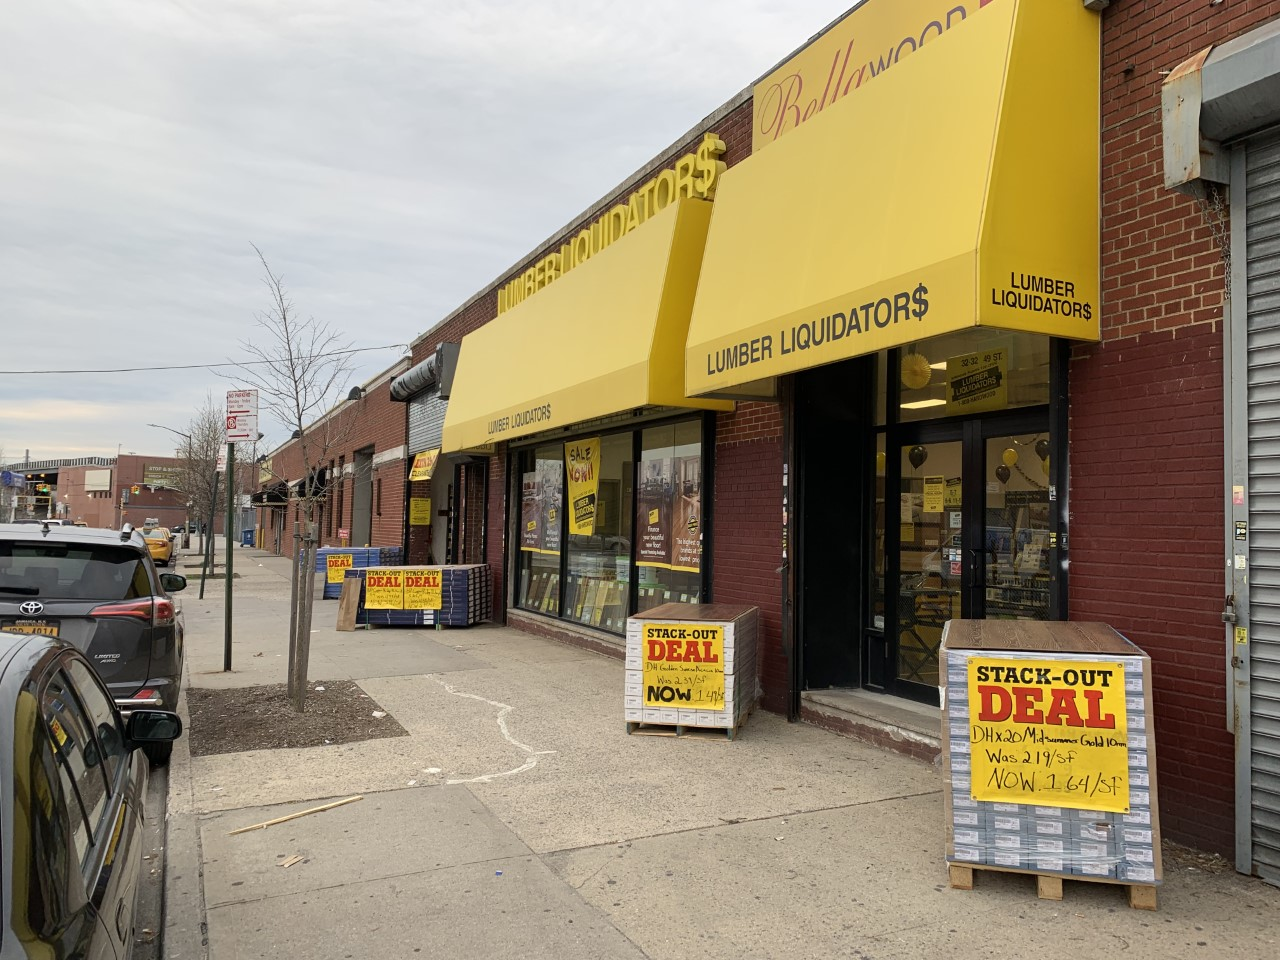 Lumber Liquidators Flooring #1219 Astoria | 32-32 49th Street | Store Front